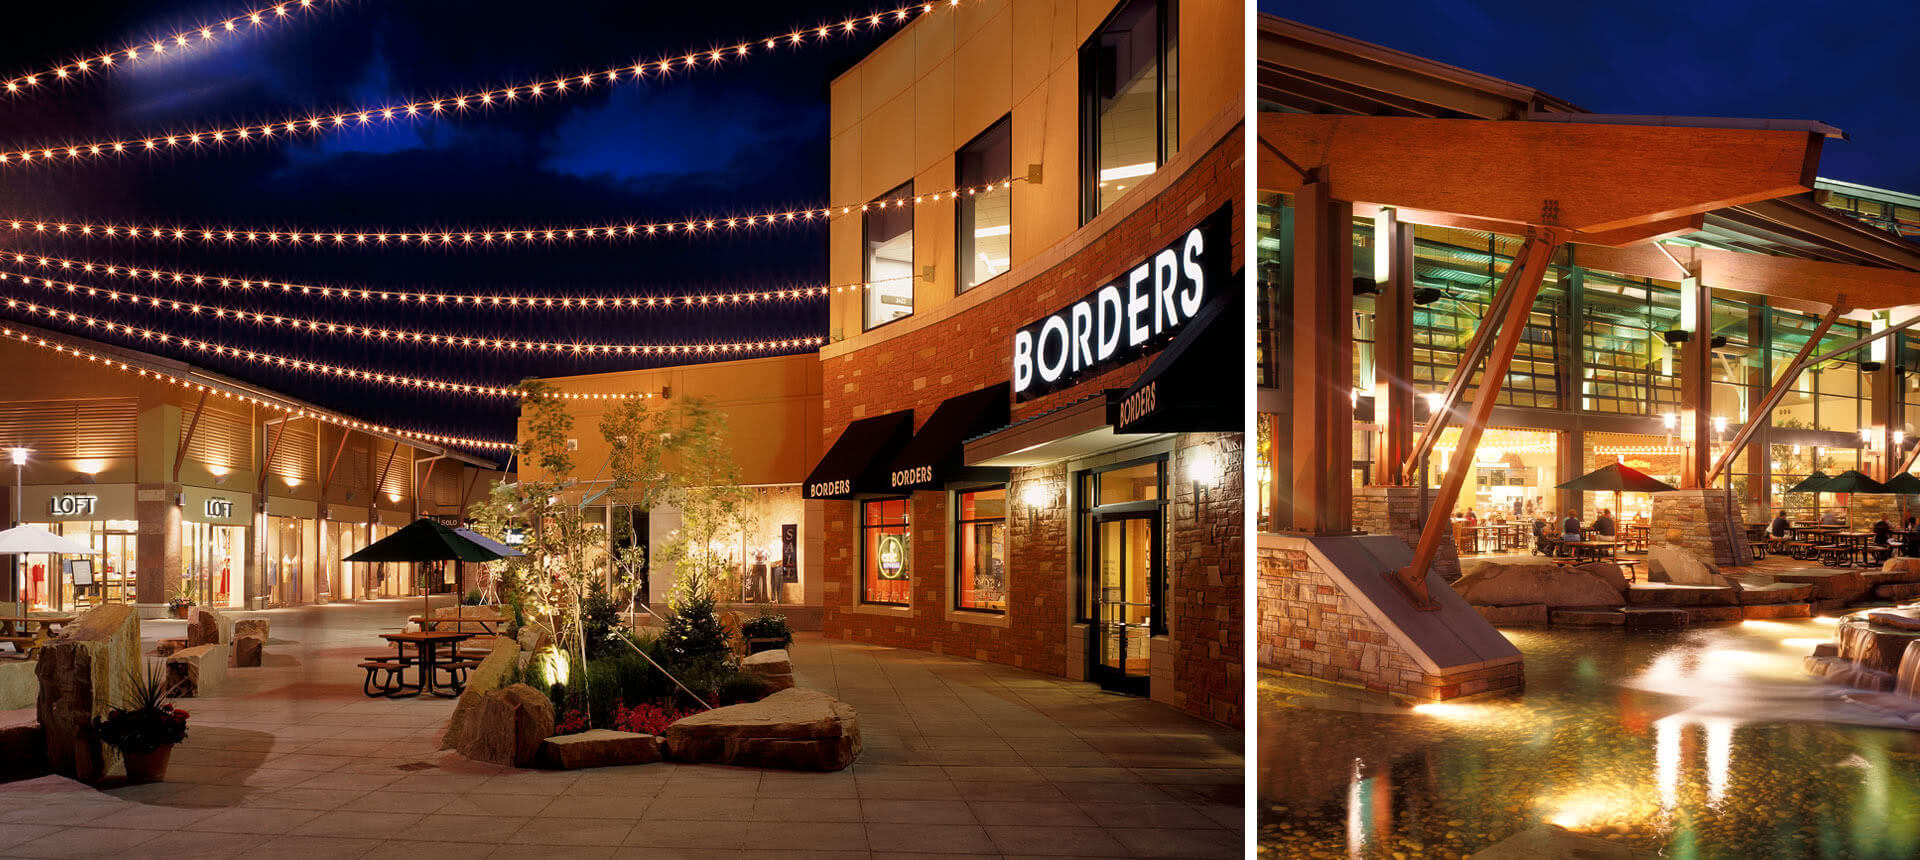 FlatIron Crossing is an enclosed shopping center in Broomfield, Colorado, anchored by Nordstrom, Macy's, Dillard's, and Dick's Sporting Goods. An outdoor lifestyle center, named FlatIron Village; extends out of the mall's southern side and is anchored by a 16 .